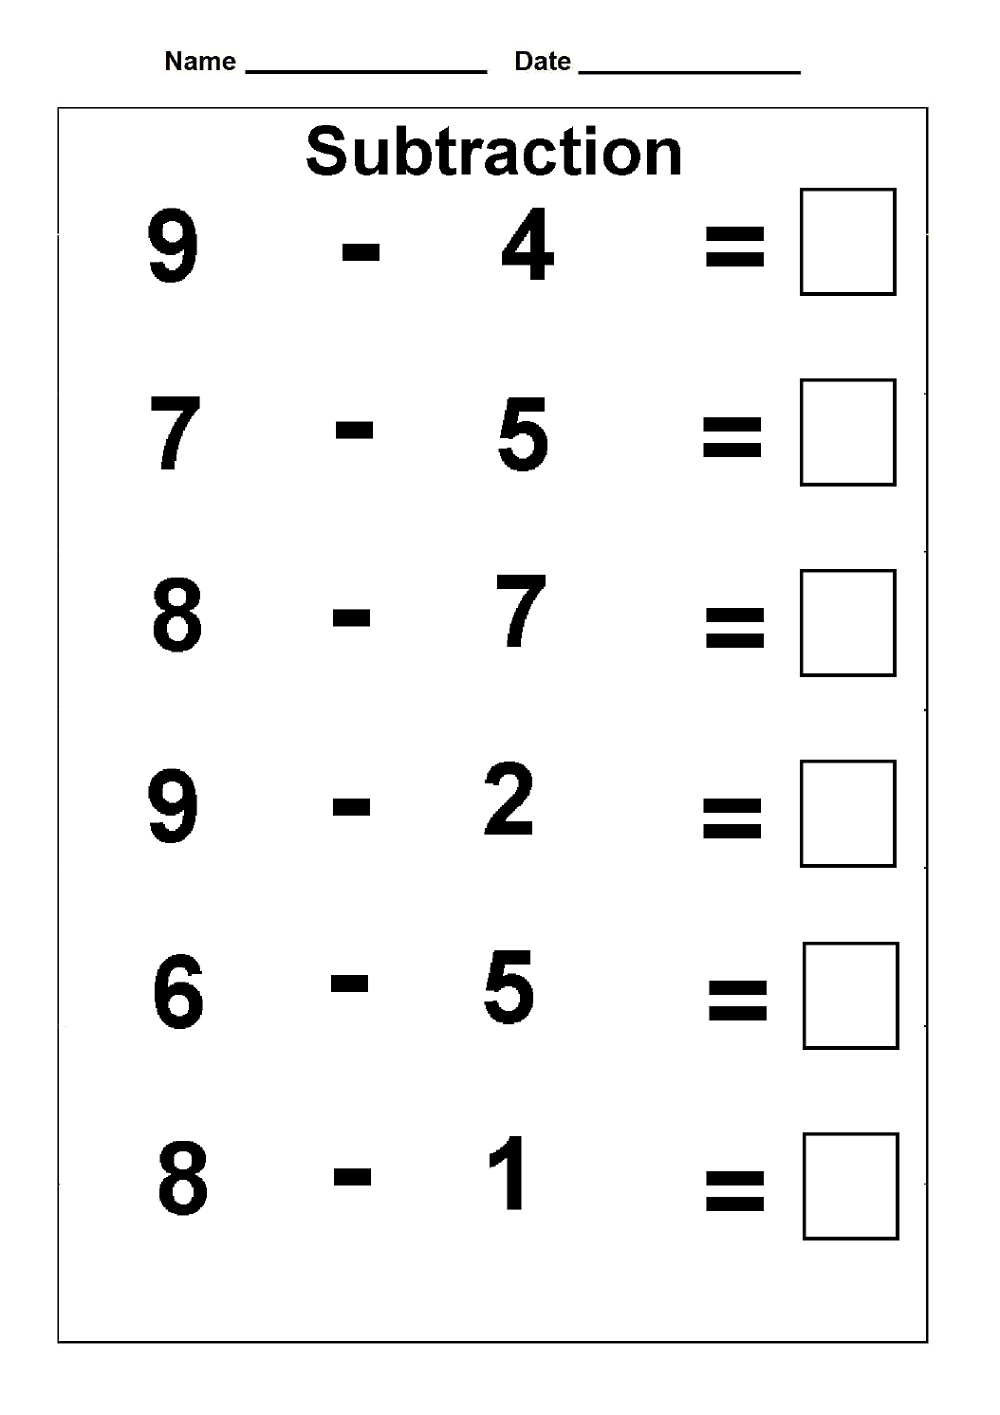 kindergarten math worksheet substraction k5 worksheets math worksheets for kids. Black Bedroom Furniture Sets. Home Design Ideas